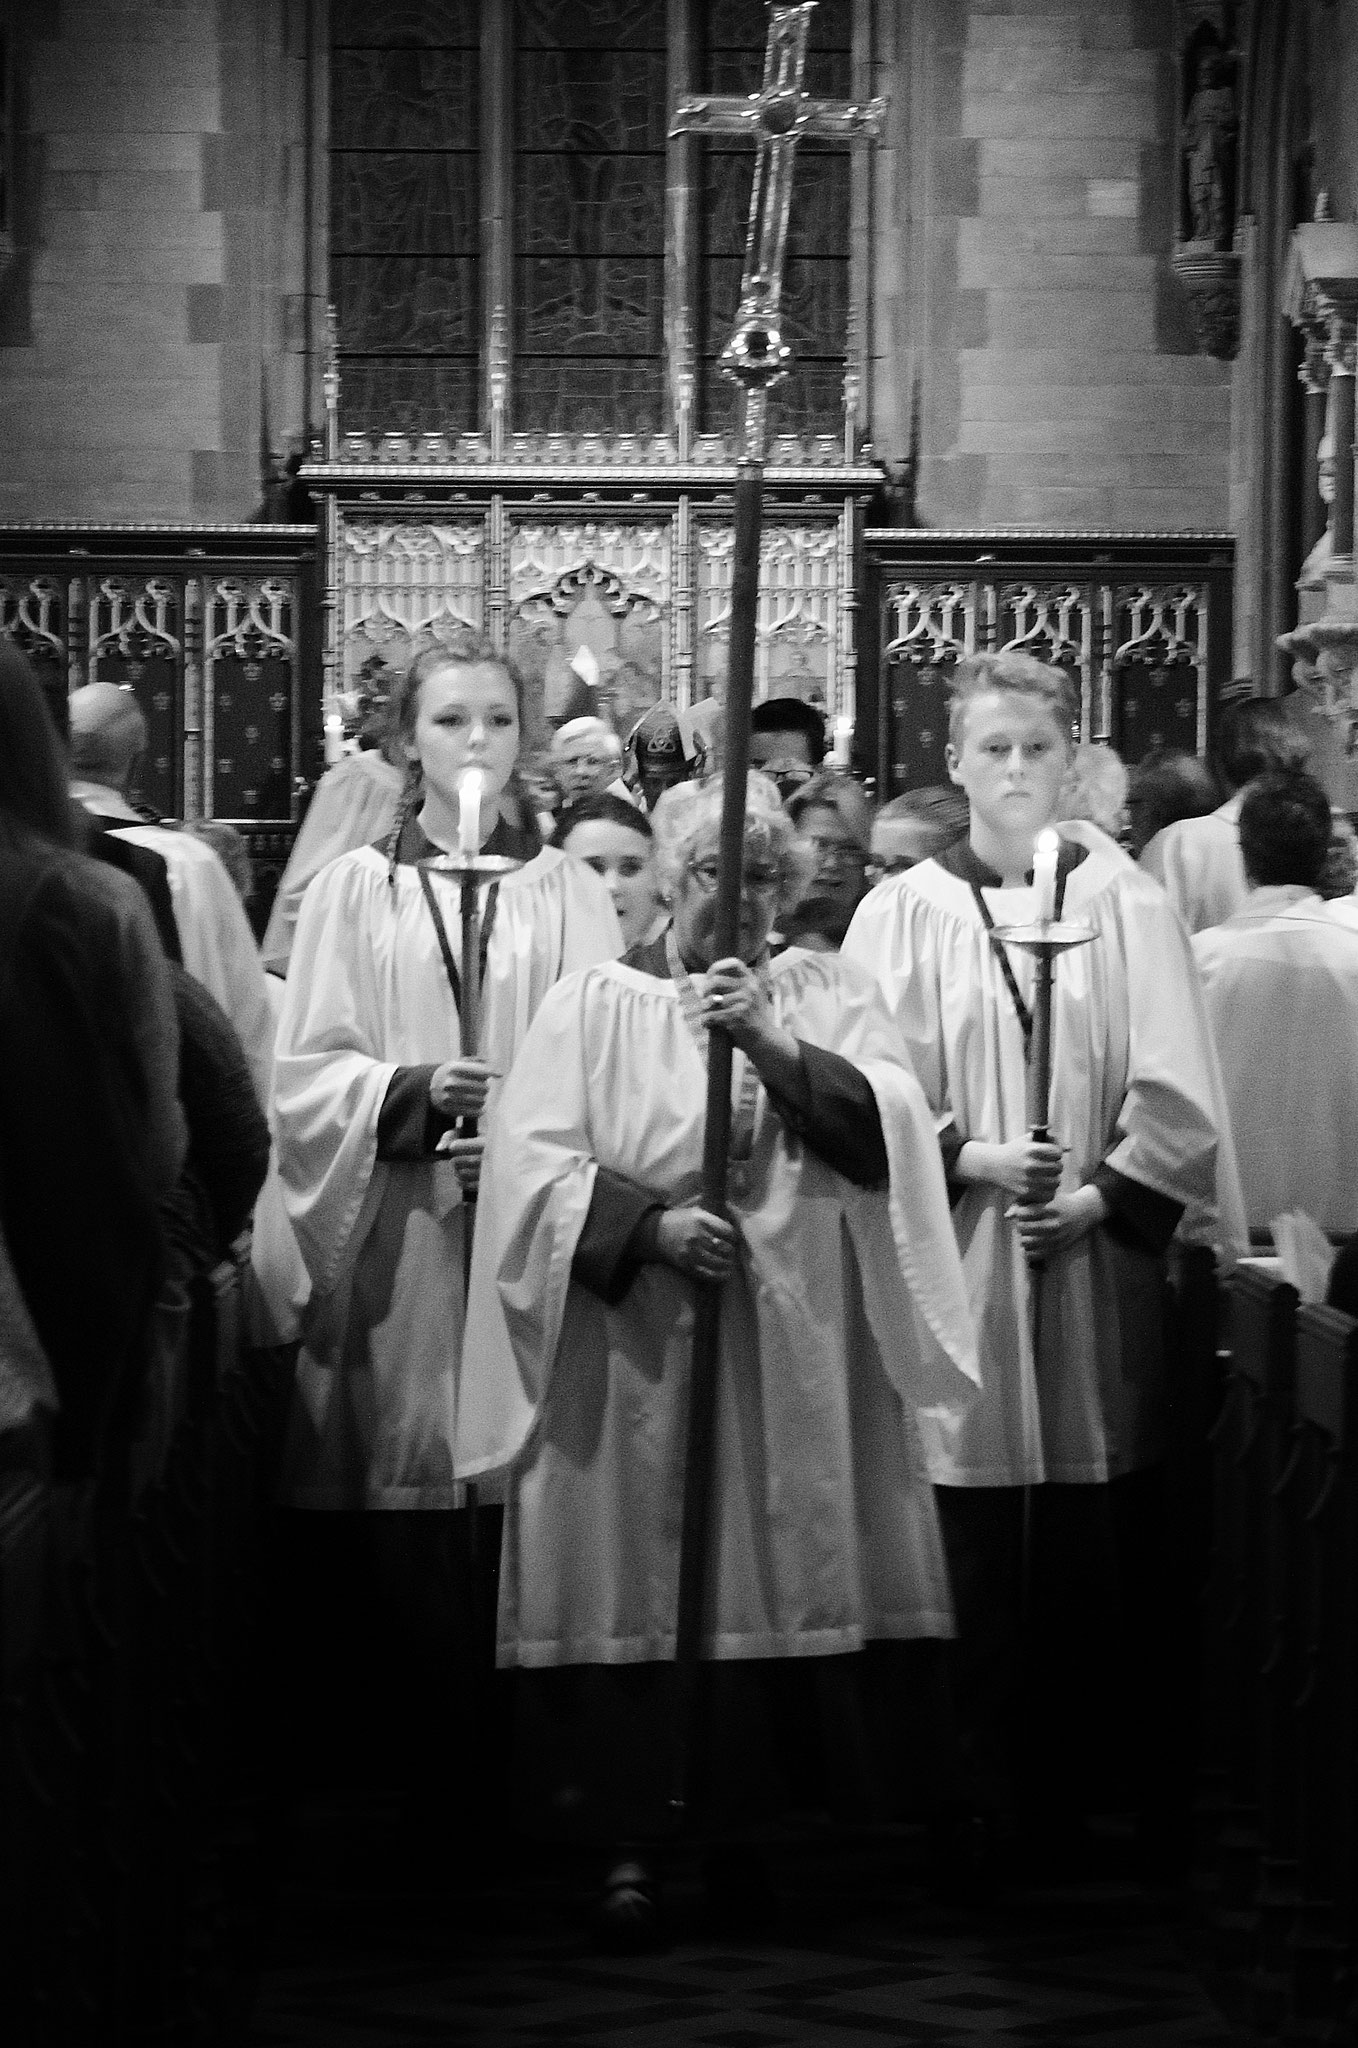 Cross and acolytes lead the recession